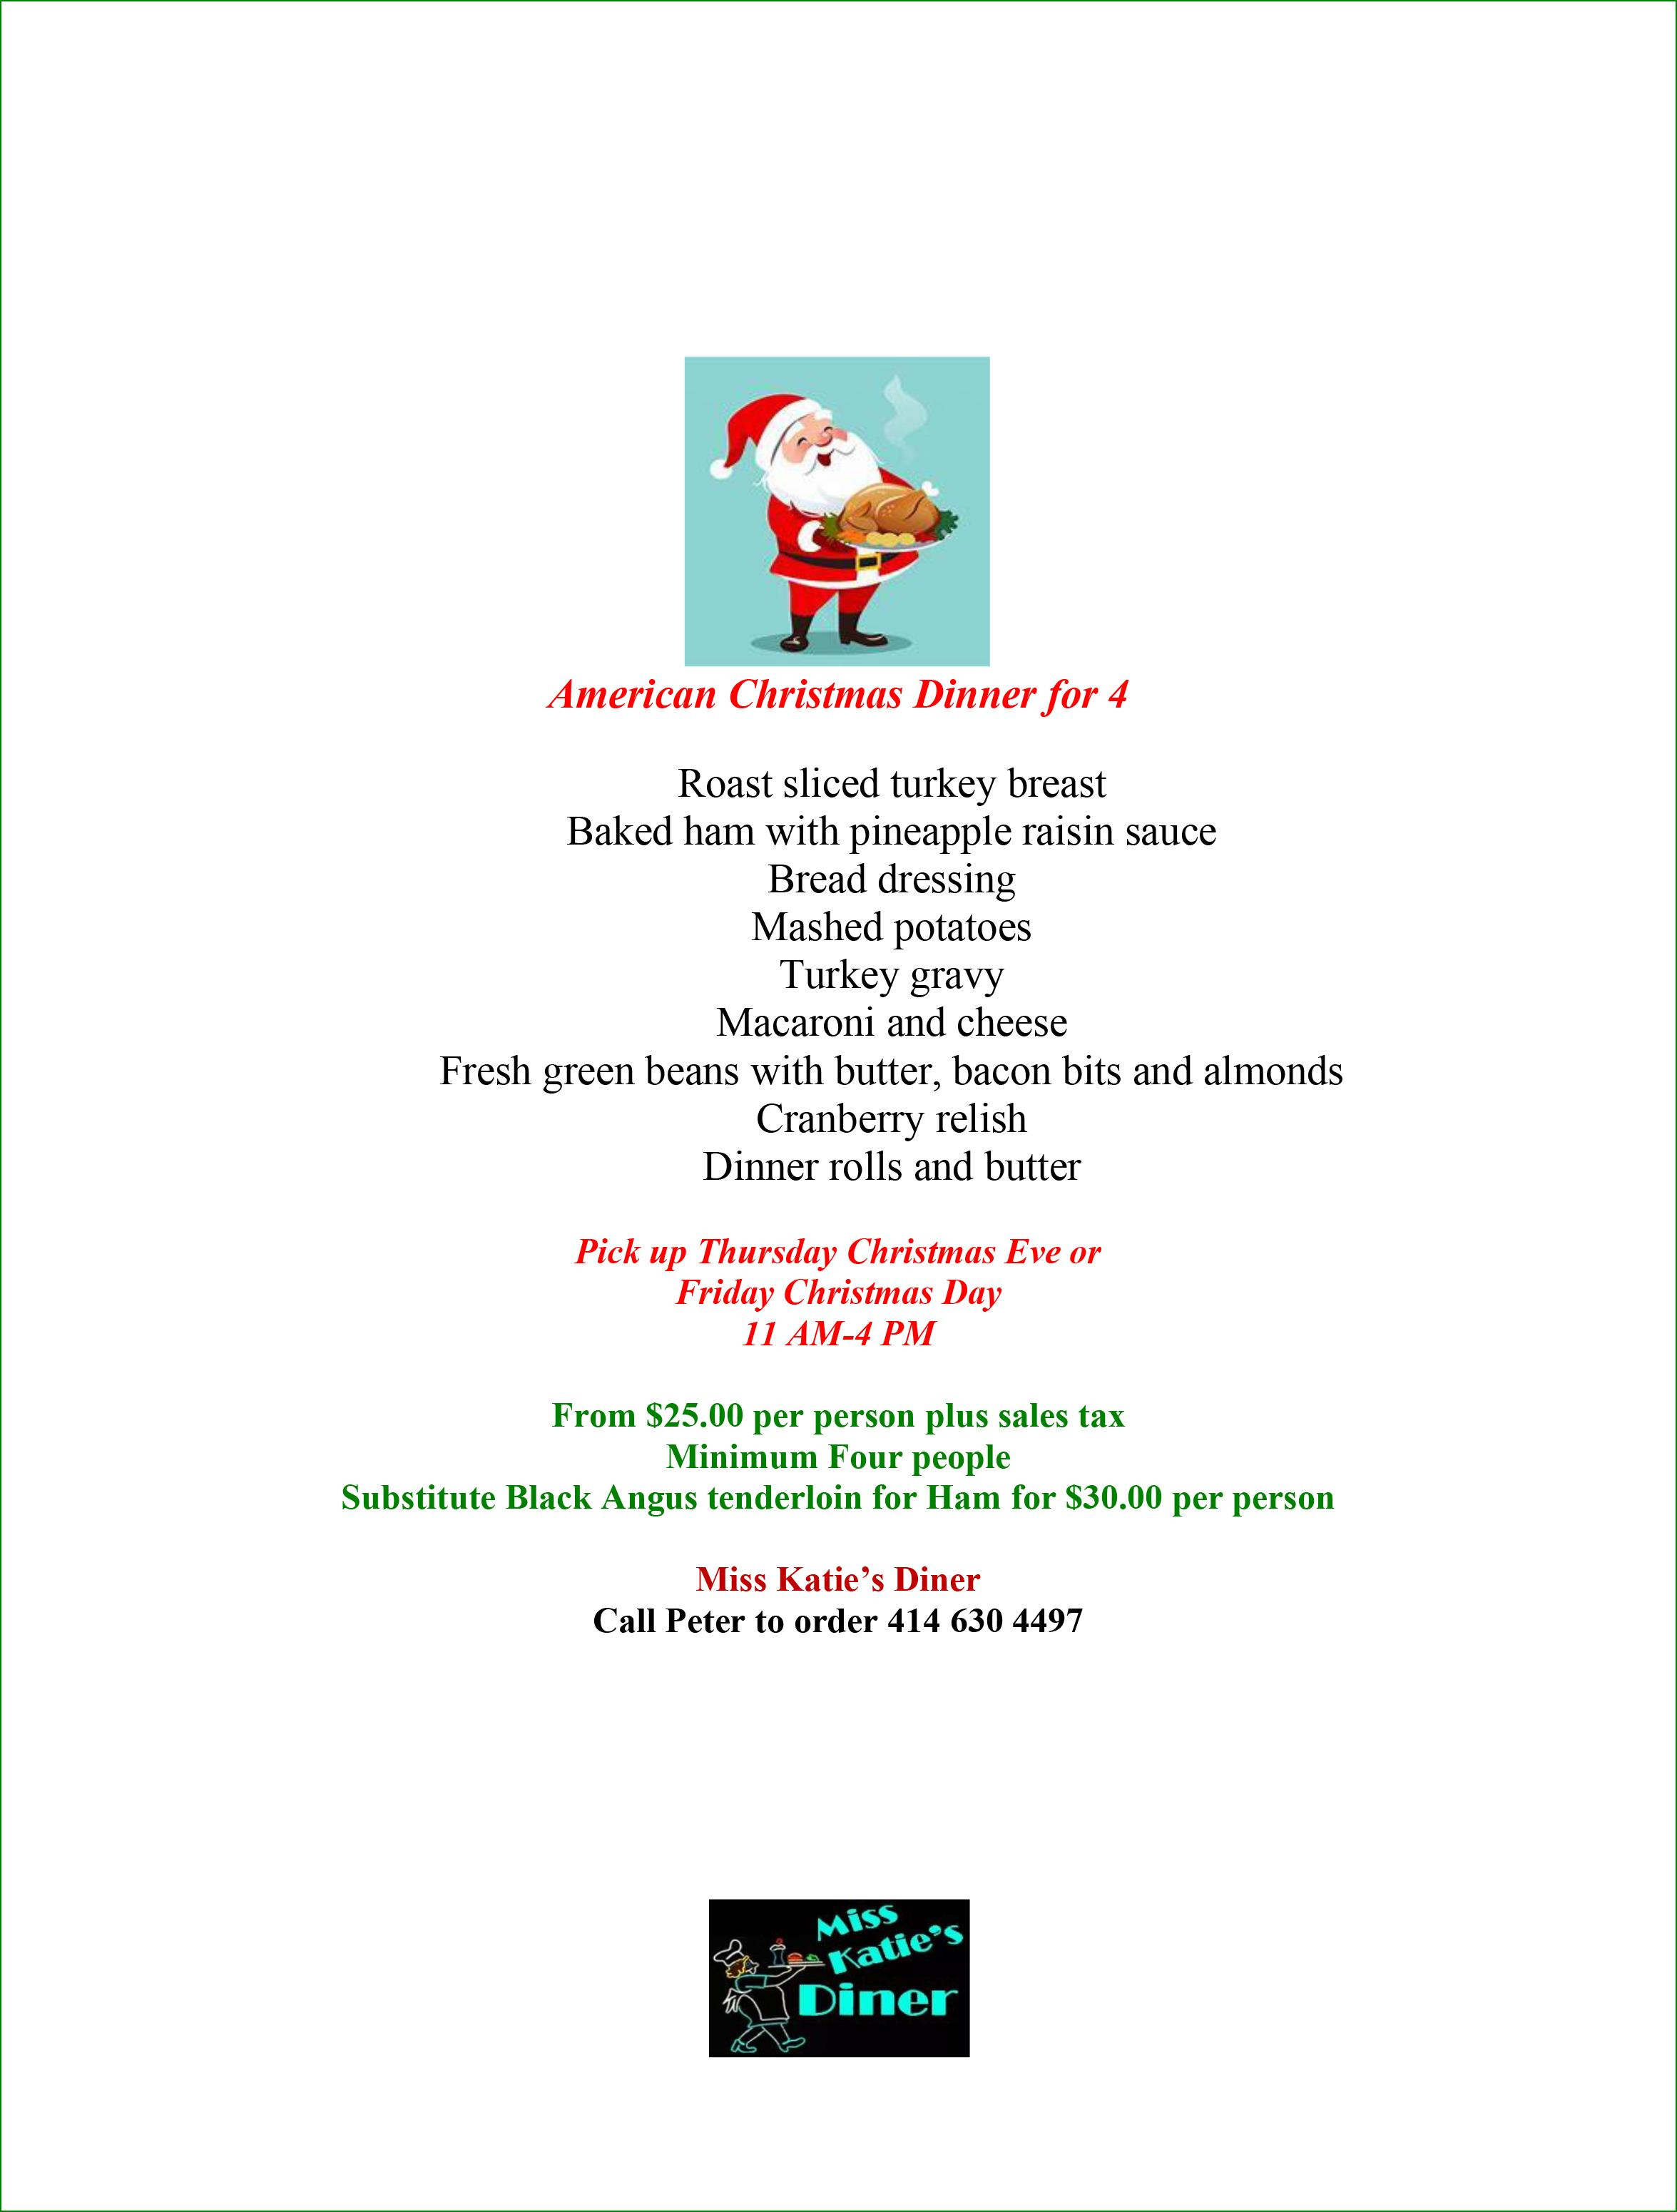 American Christmas Dinner for 4 - click for full readable PDF